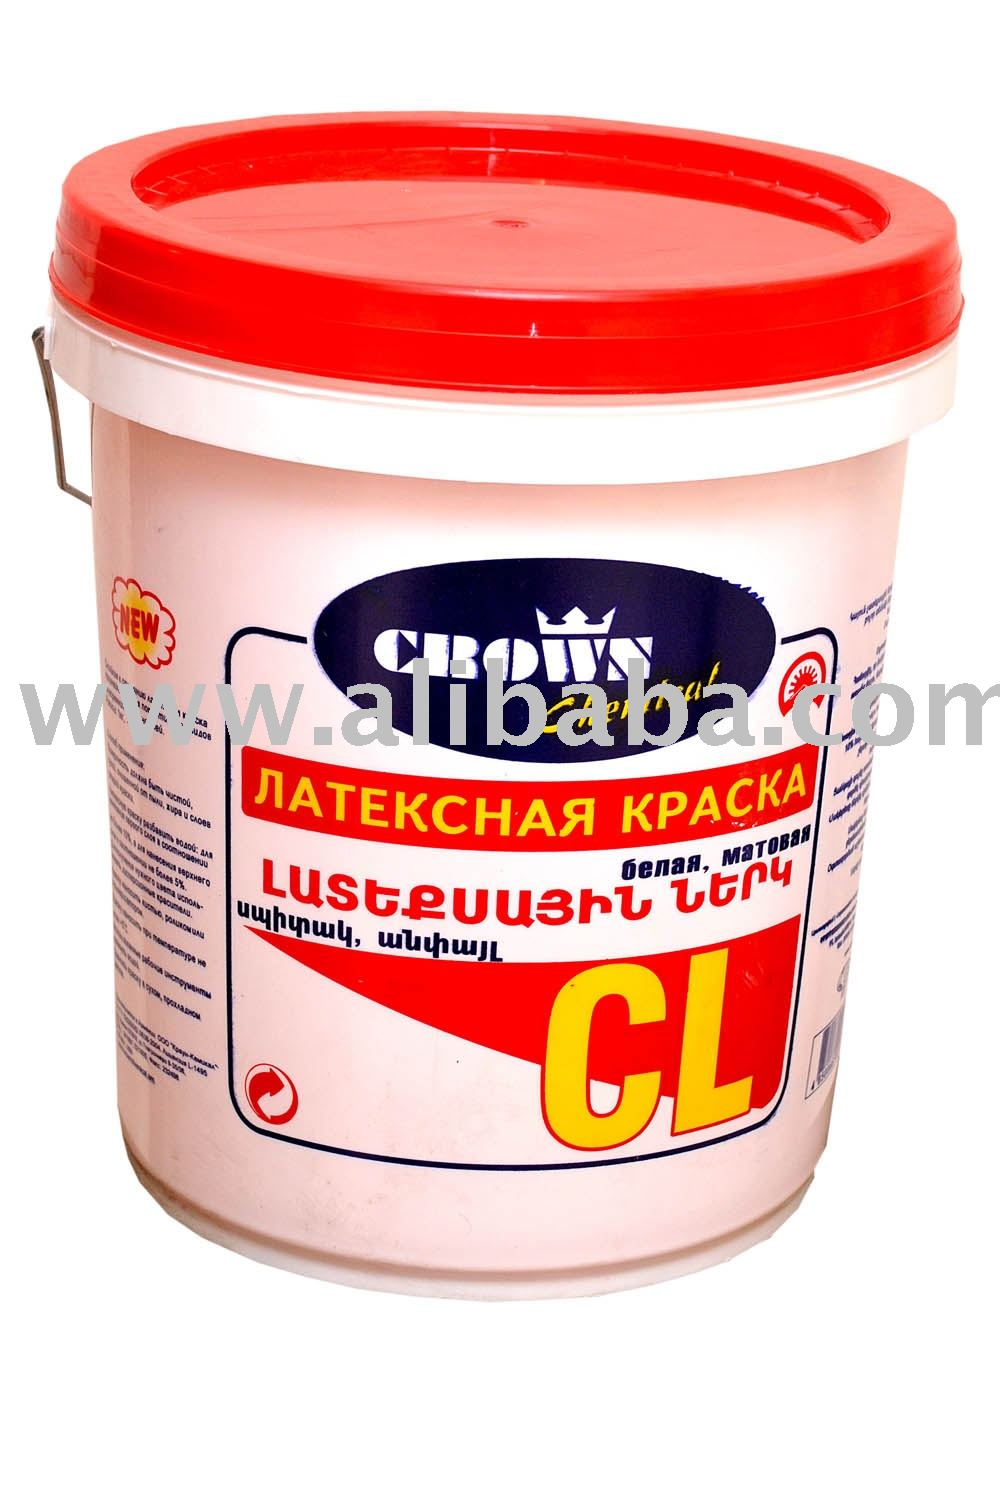 Water-based Paint Latex (water Resistant) - Buy Latex Paint ...